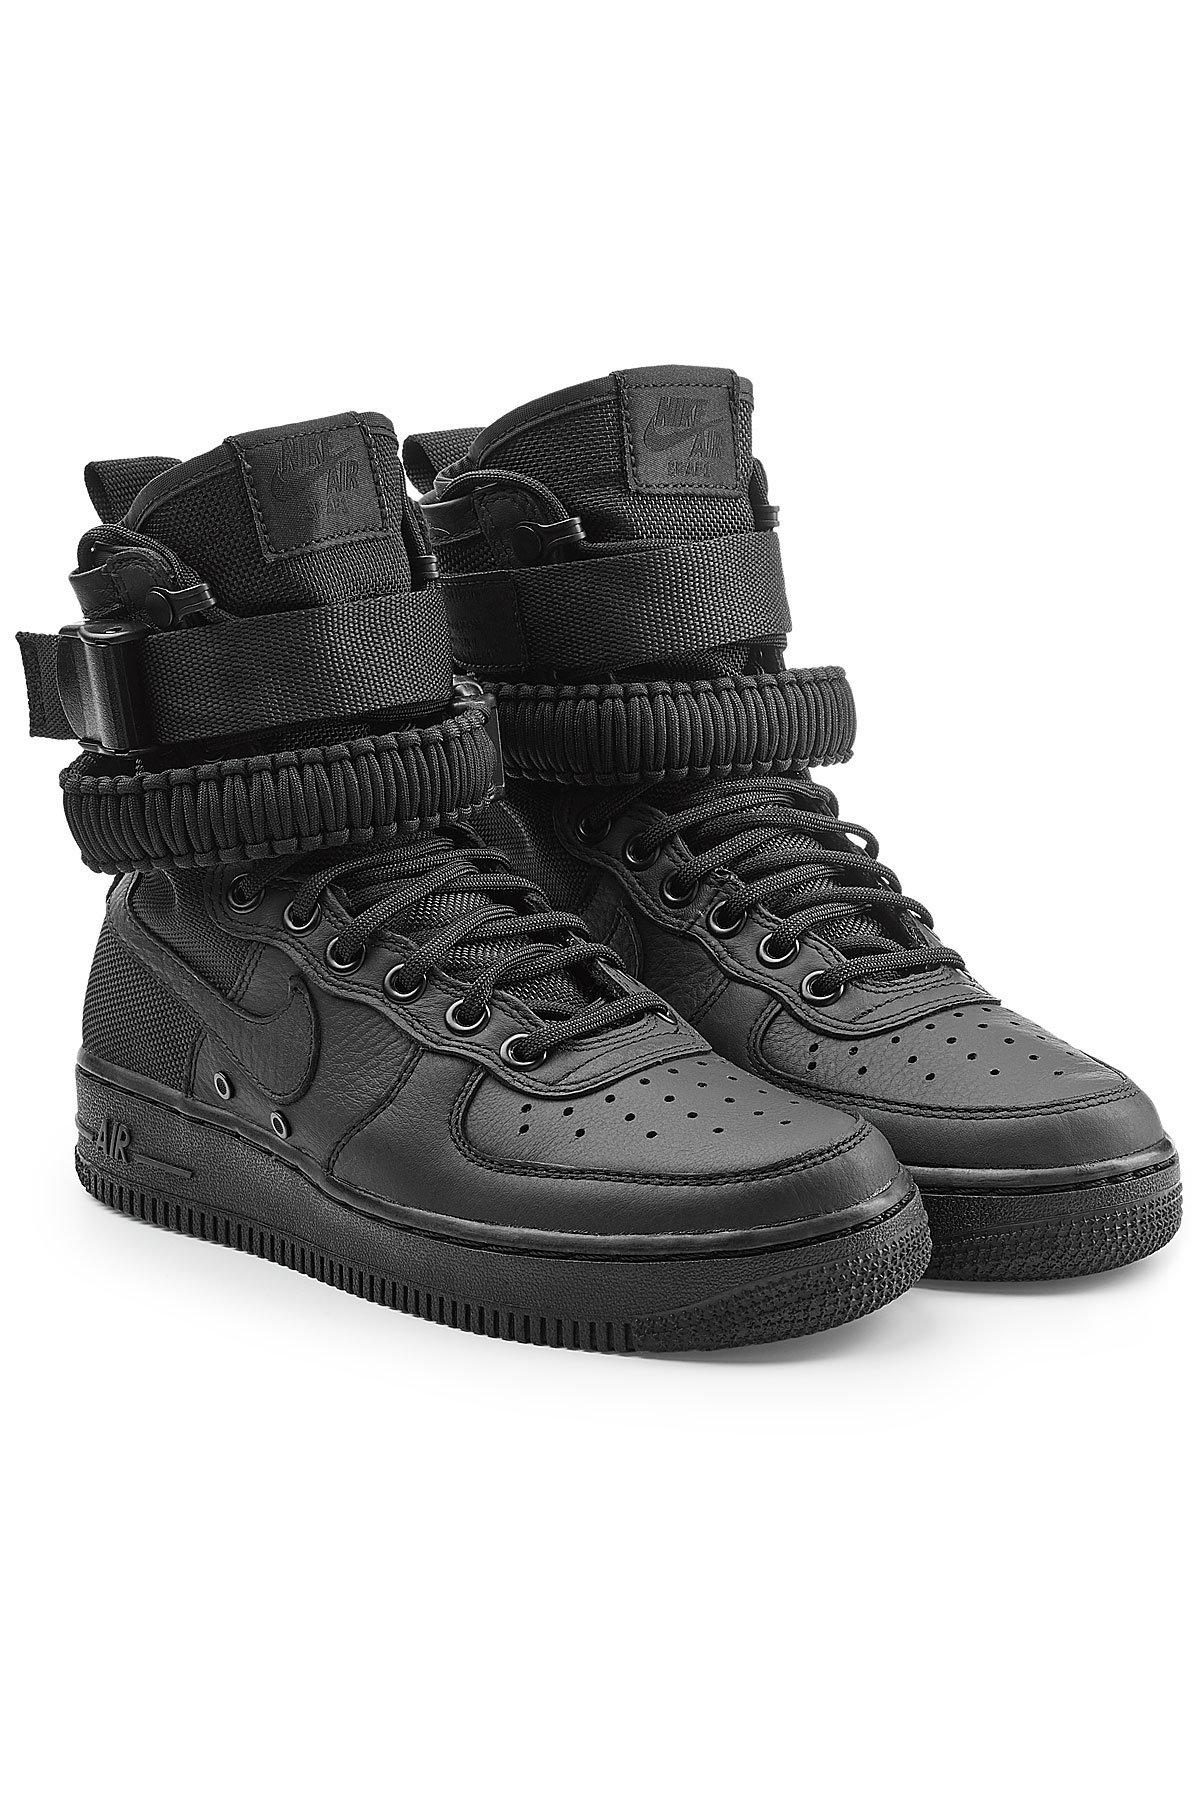 Nike Sf Air Force 1 High Top Sneakers With Leather in ...